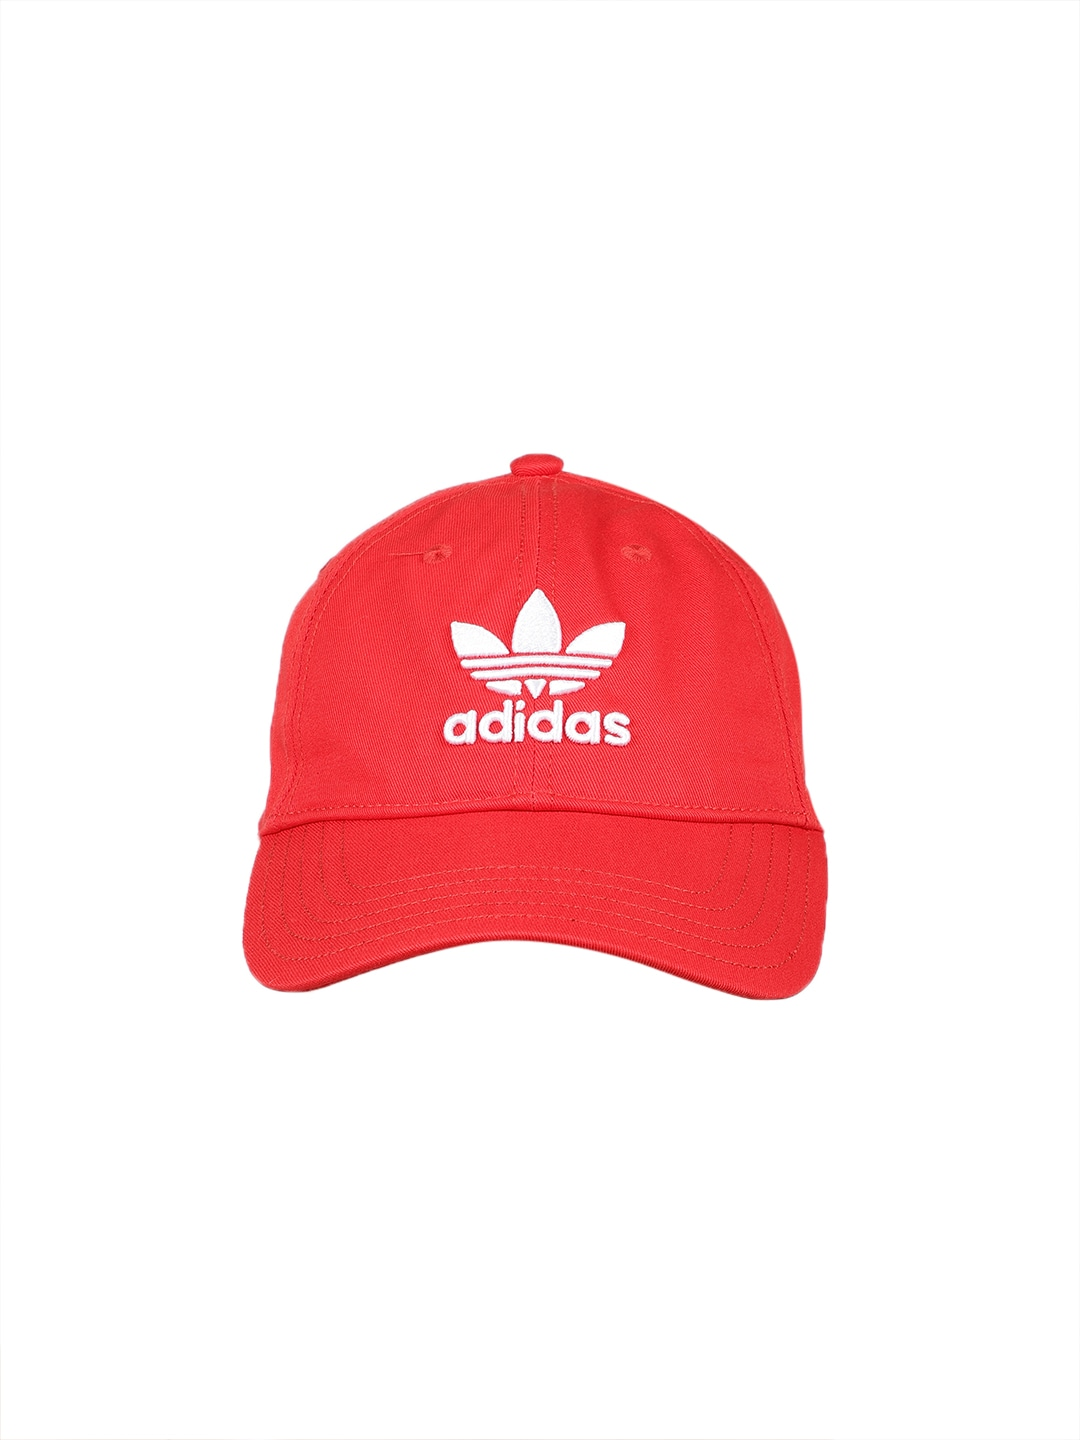 Adidas Cap - Buy Adidas Caps for Women   Girls Online  27f0a36d254e